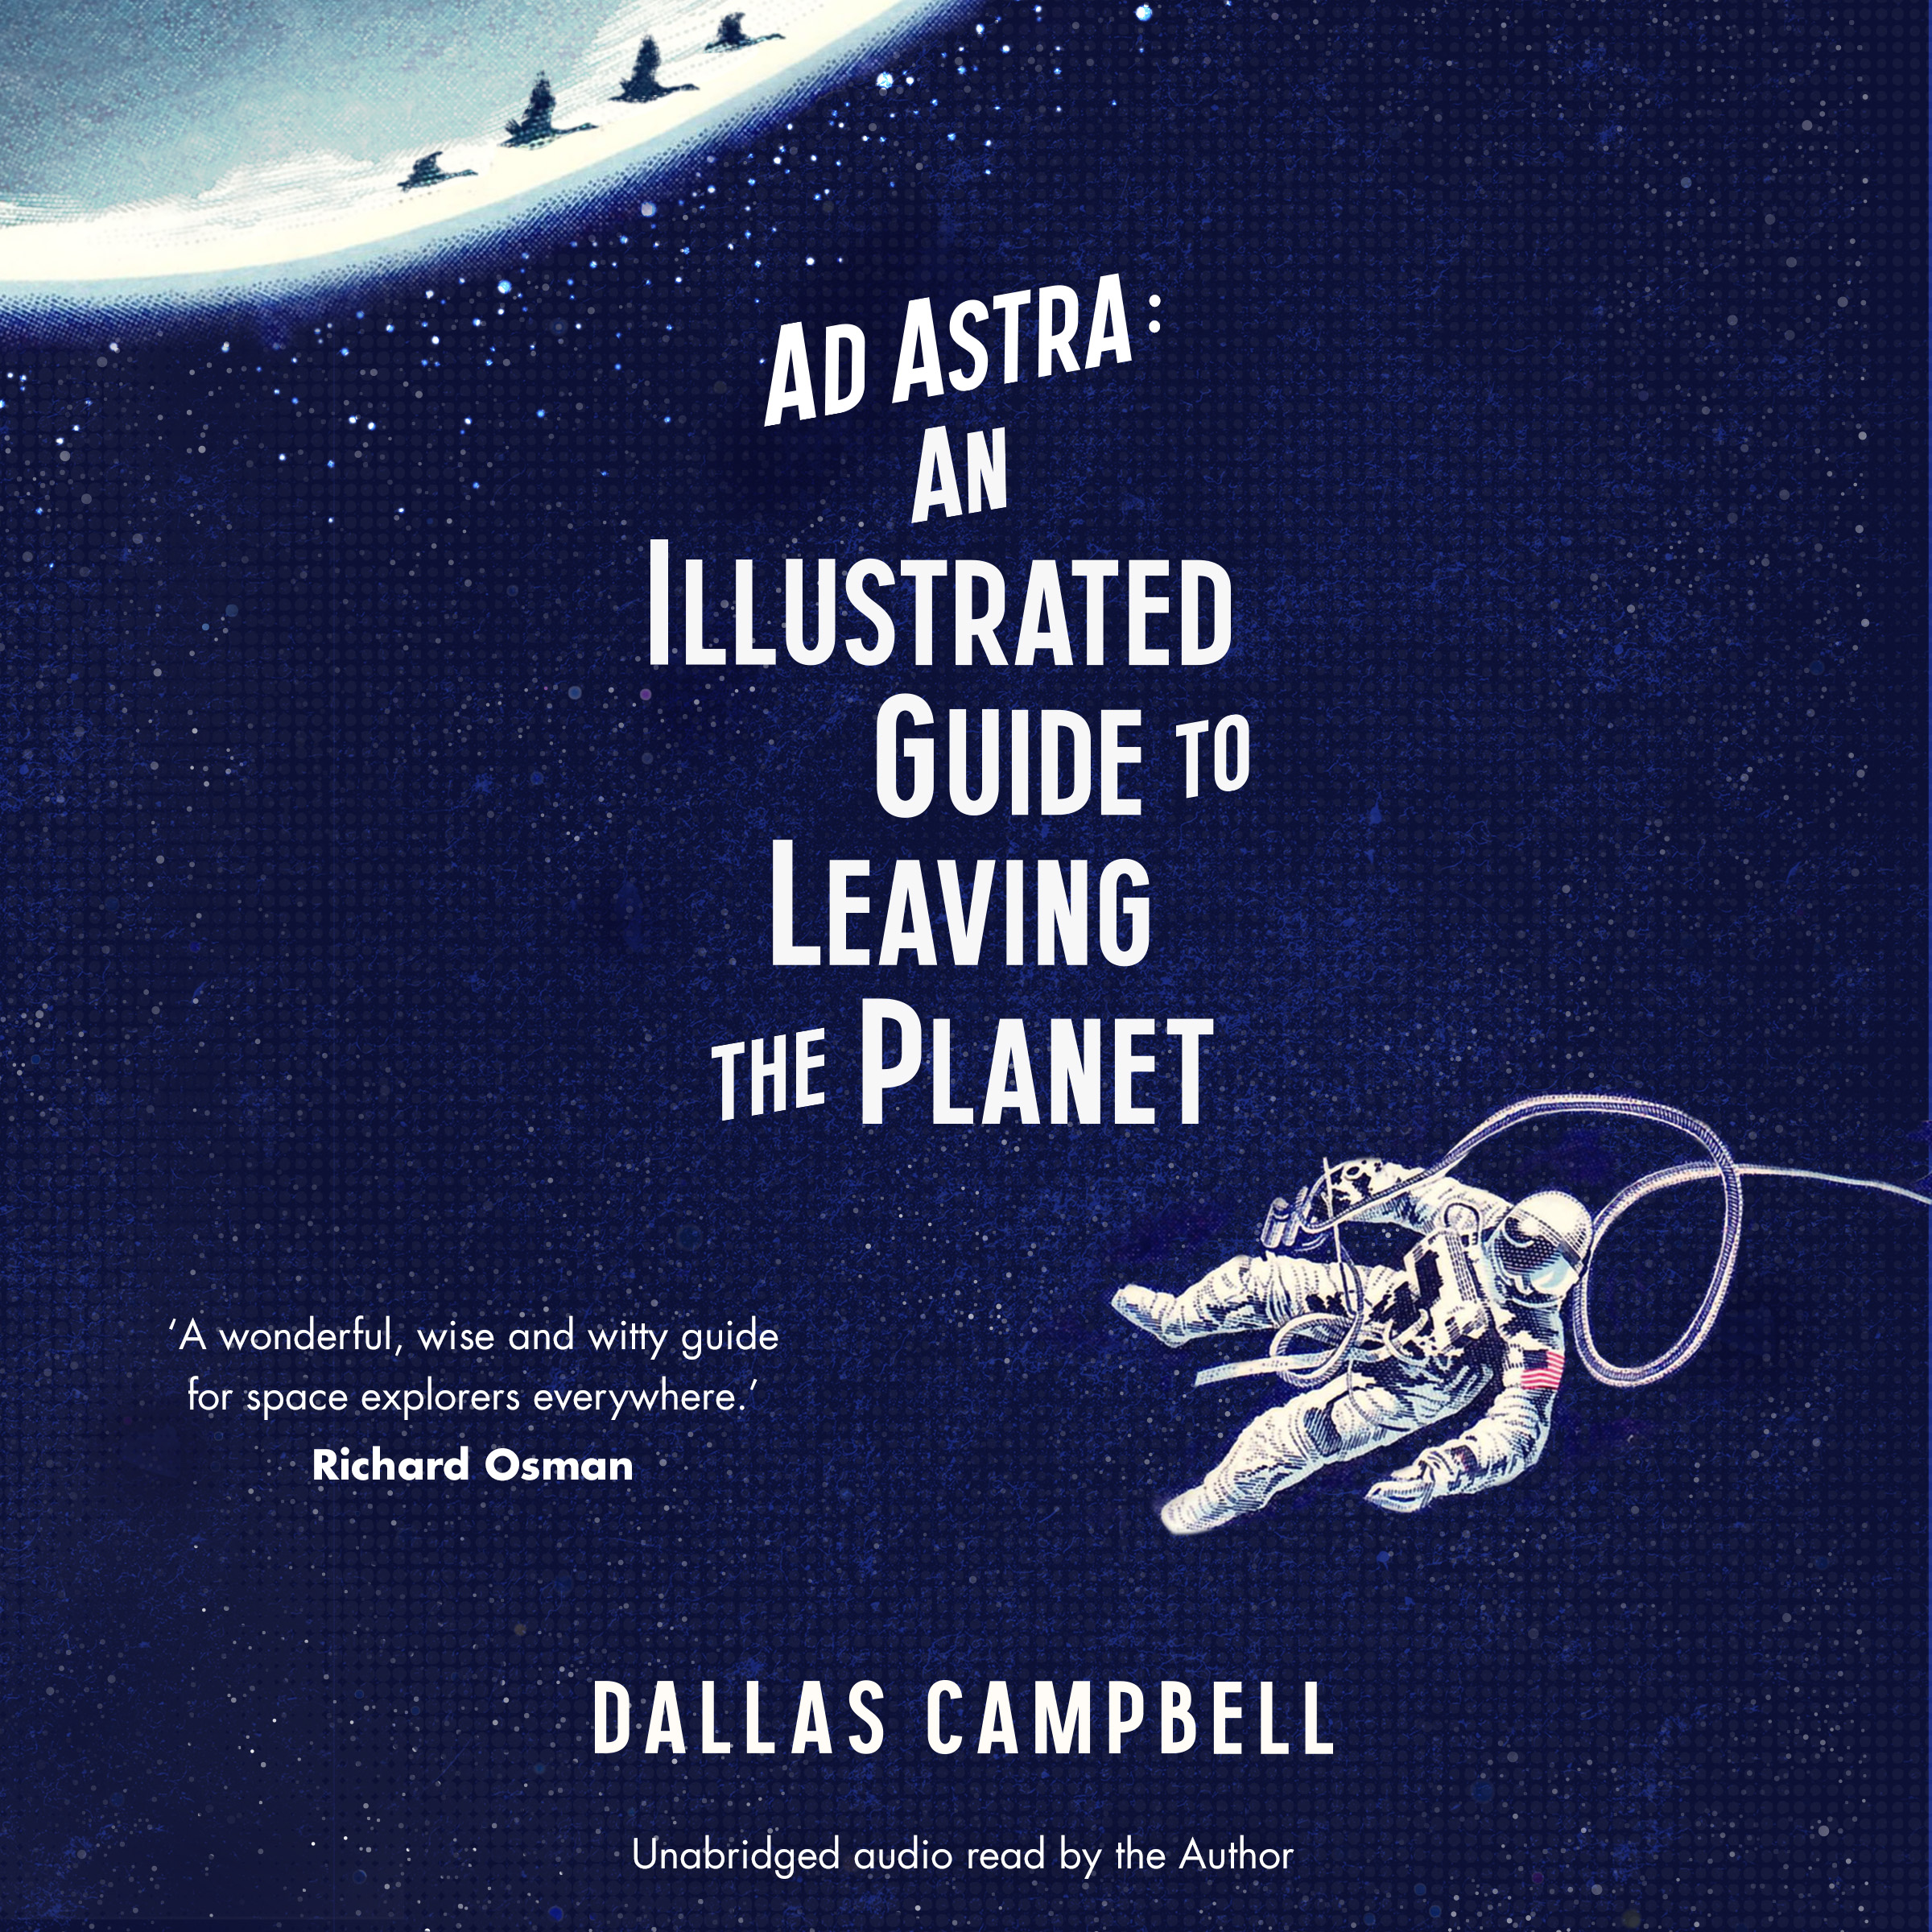 Ad astra an illustrated guide to leaving the planet 9781471167492 hr